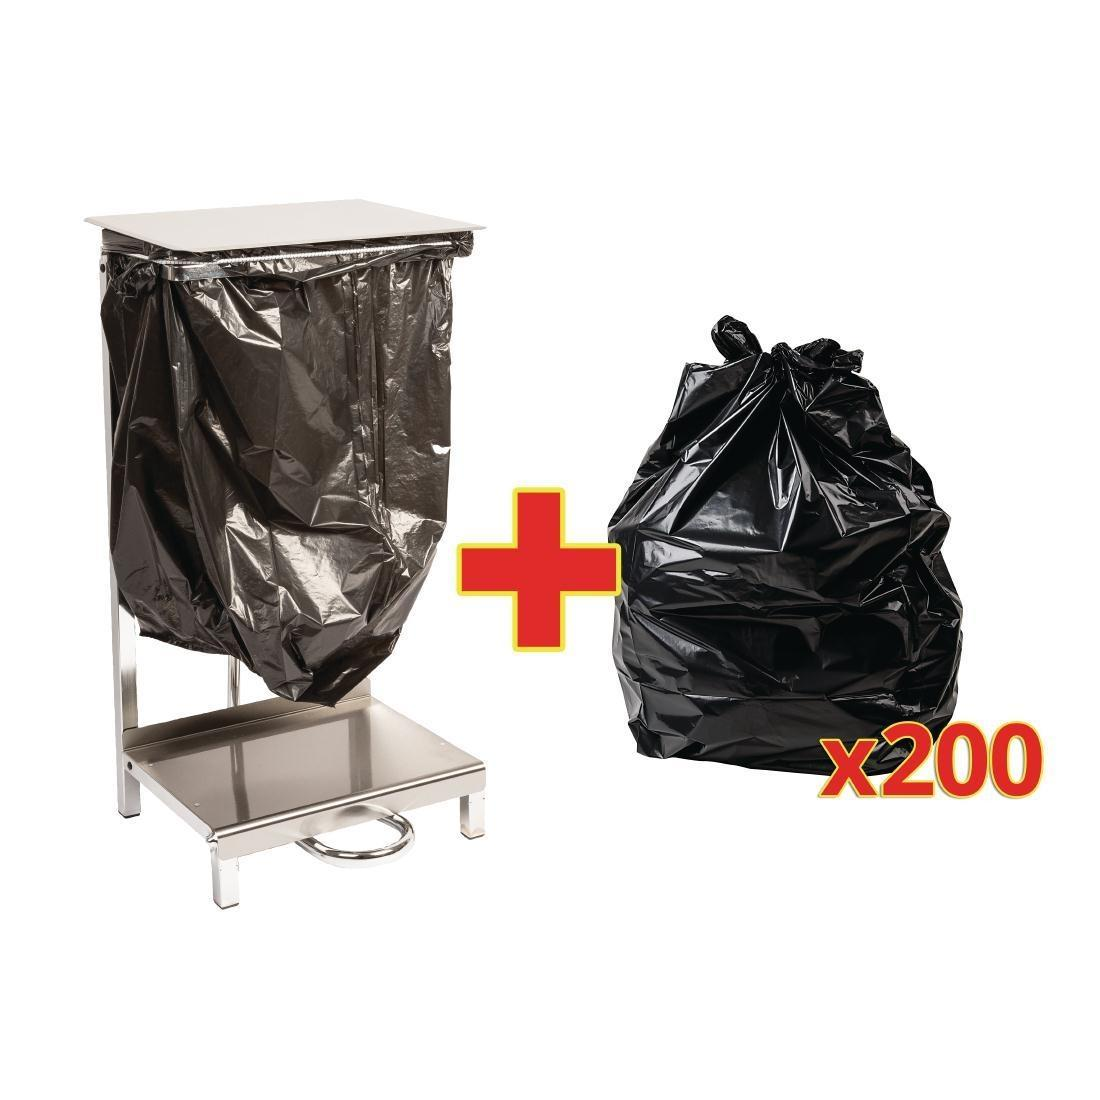 Special Offer - Jantex Steel Sack Holder and 200 Sacks